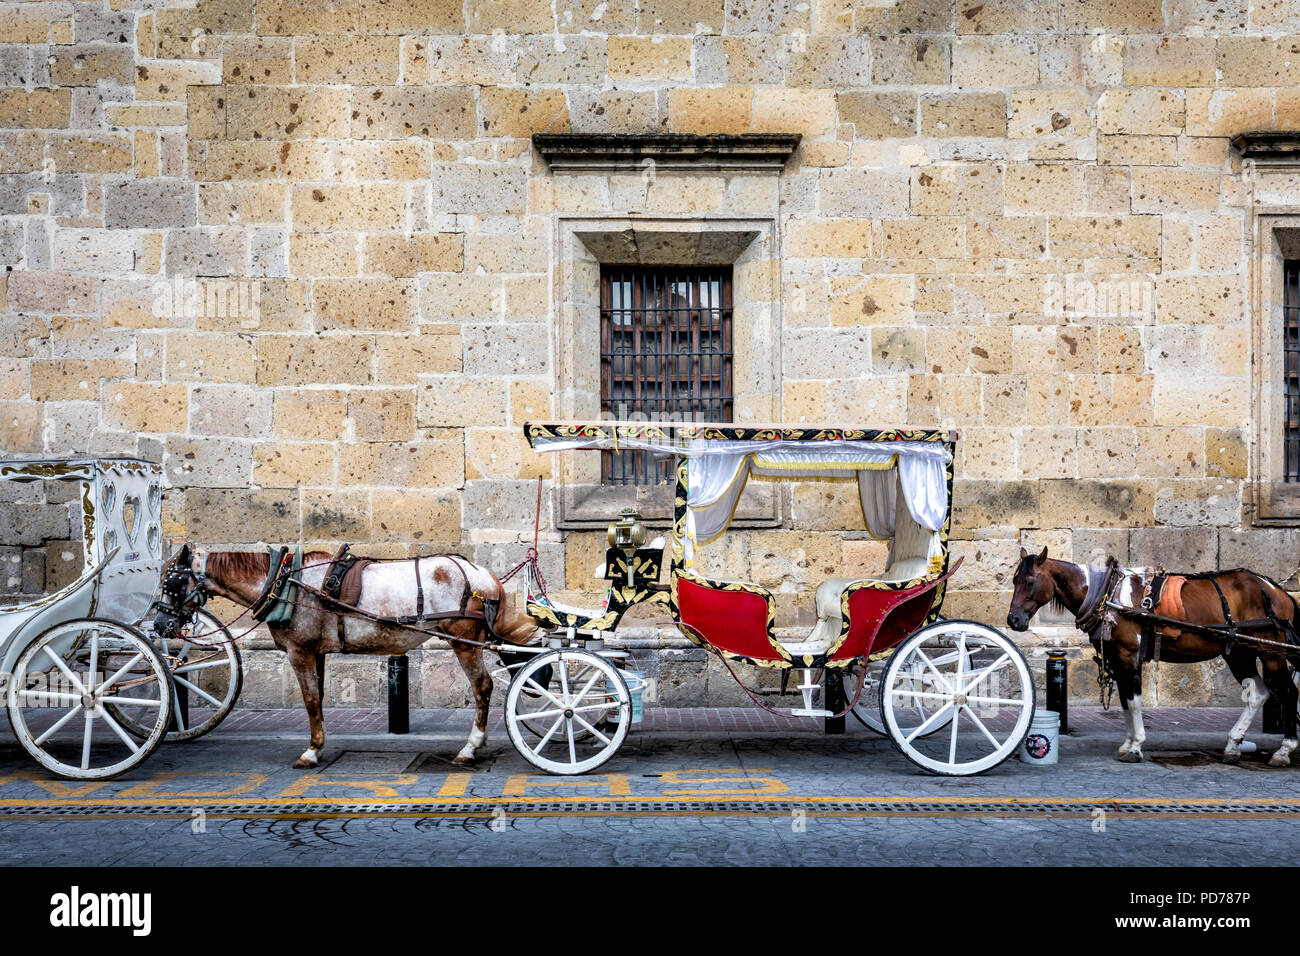 Horse drawn carriages wait for tourists in downtown Guadalajara, Jalisco, Mexico. - Stock Image